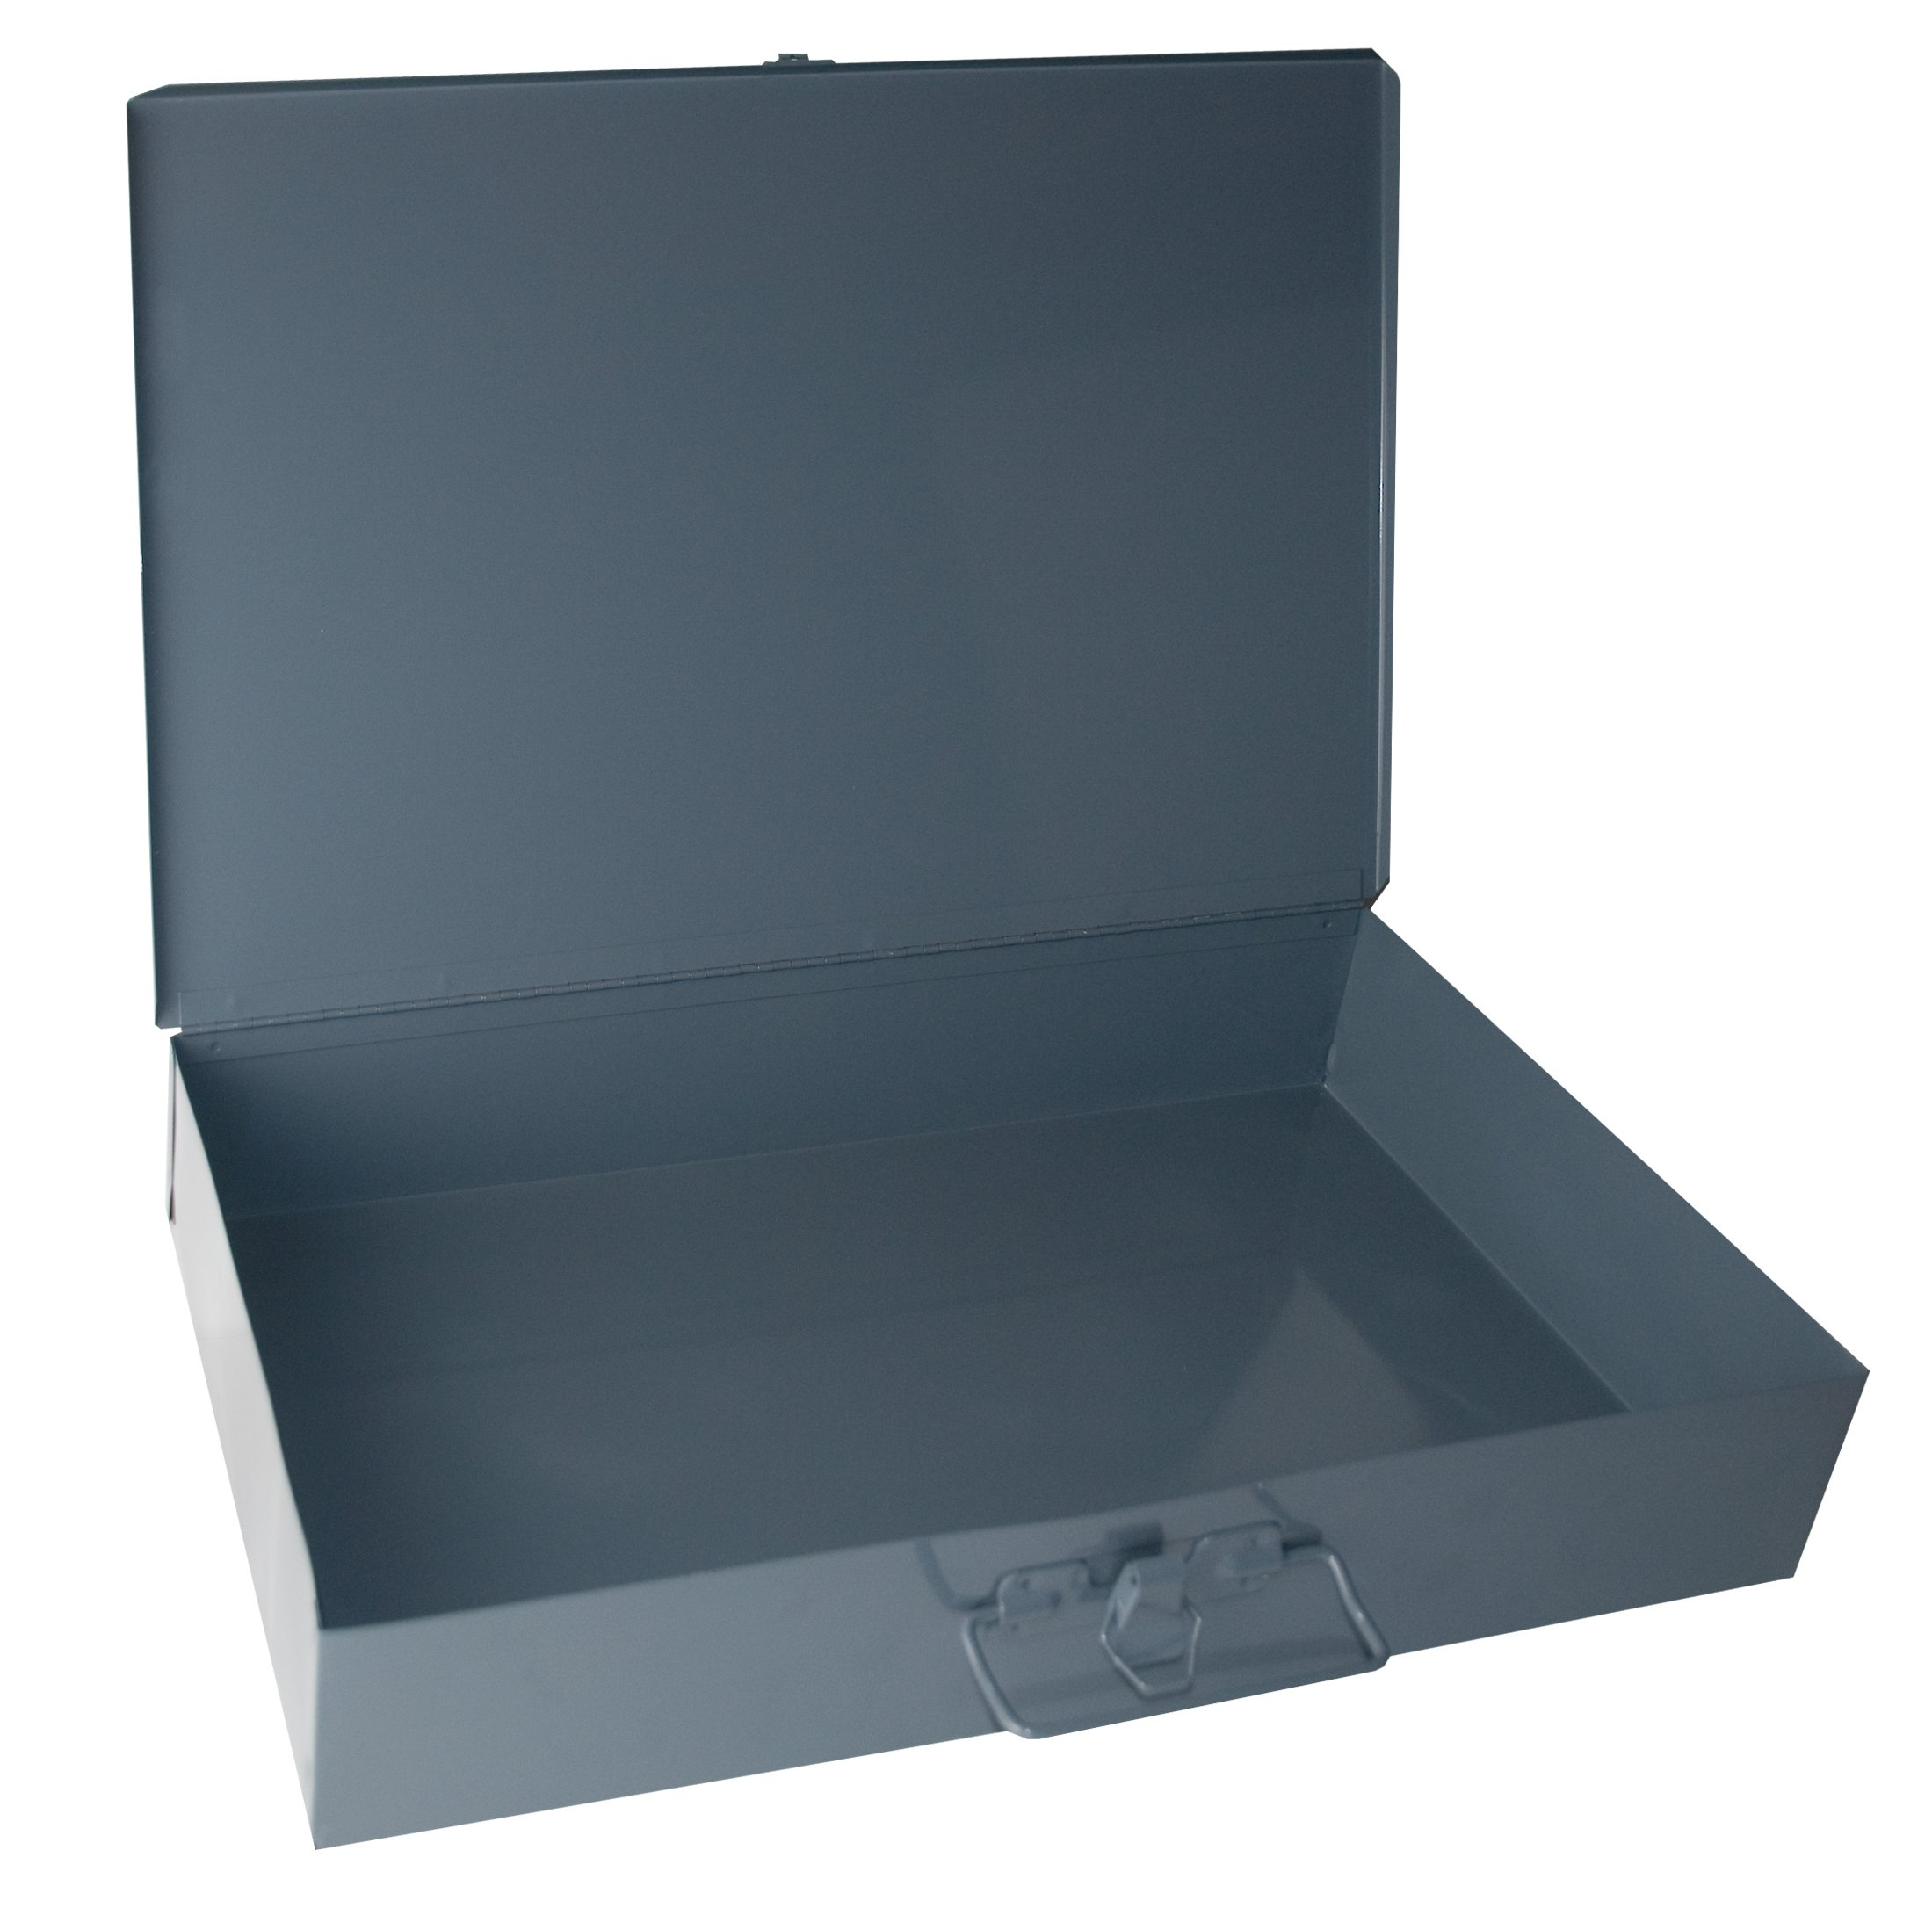 "Durham 123-95-IND Gray Cold Rolled Steel Individual Large Empty Metal Shell, 18"" Width x 3"" Height x 12"" Depth"